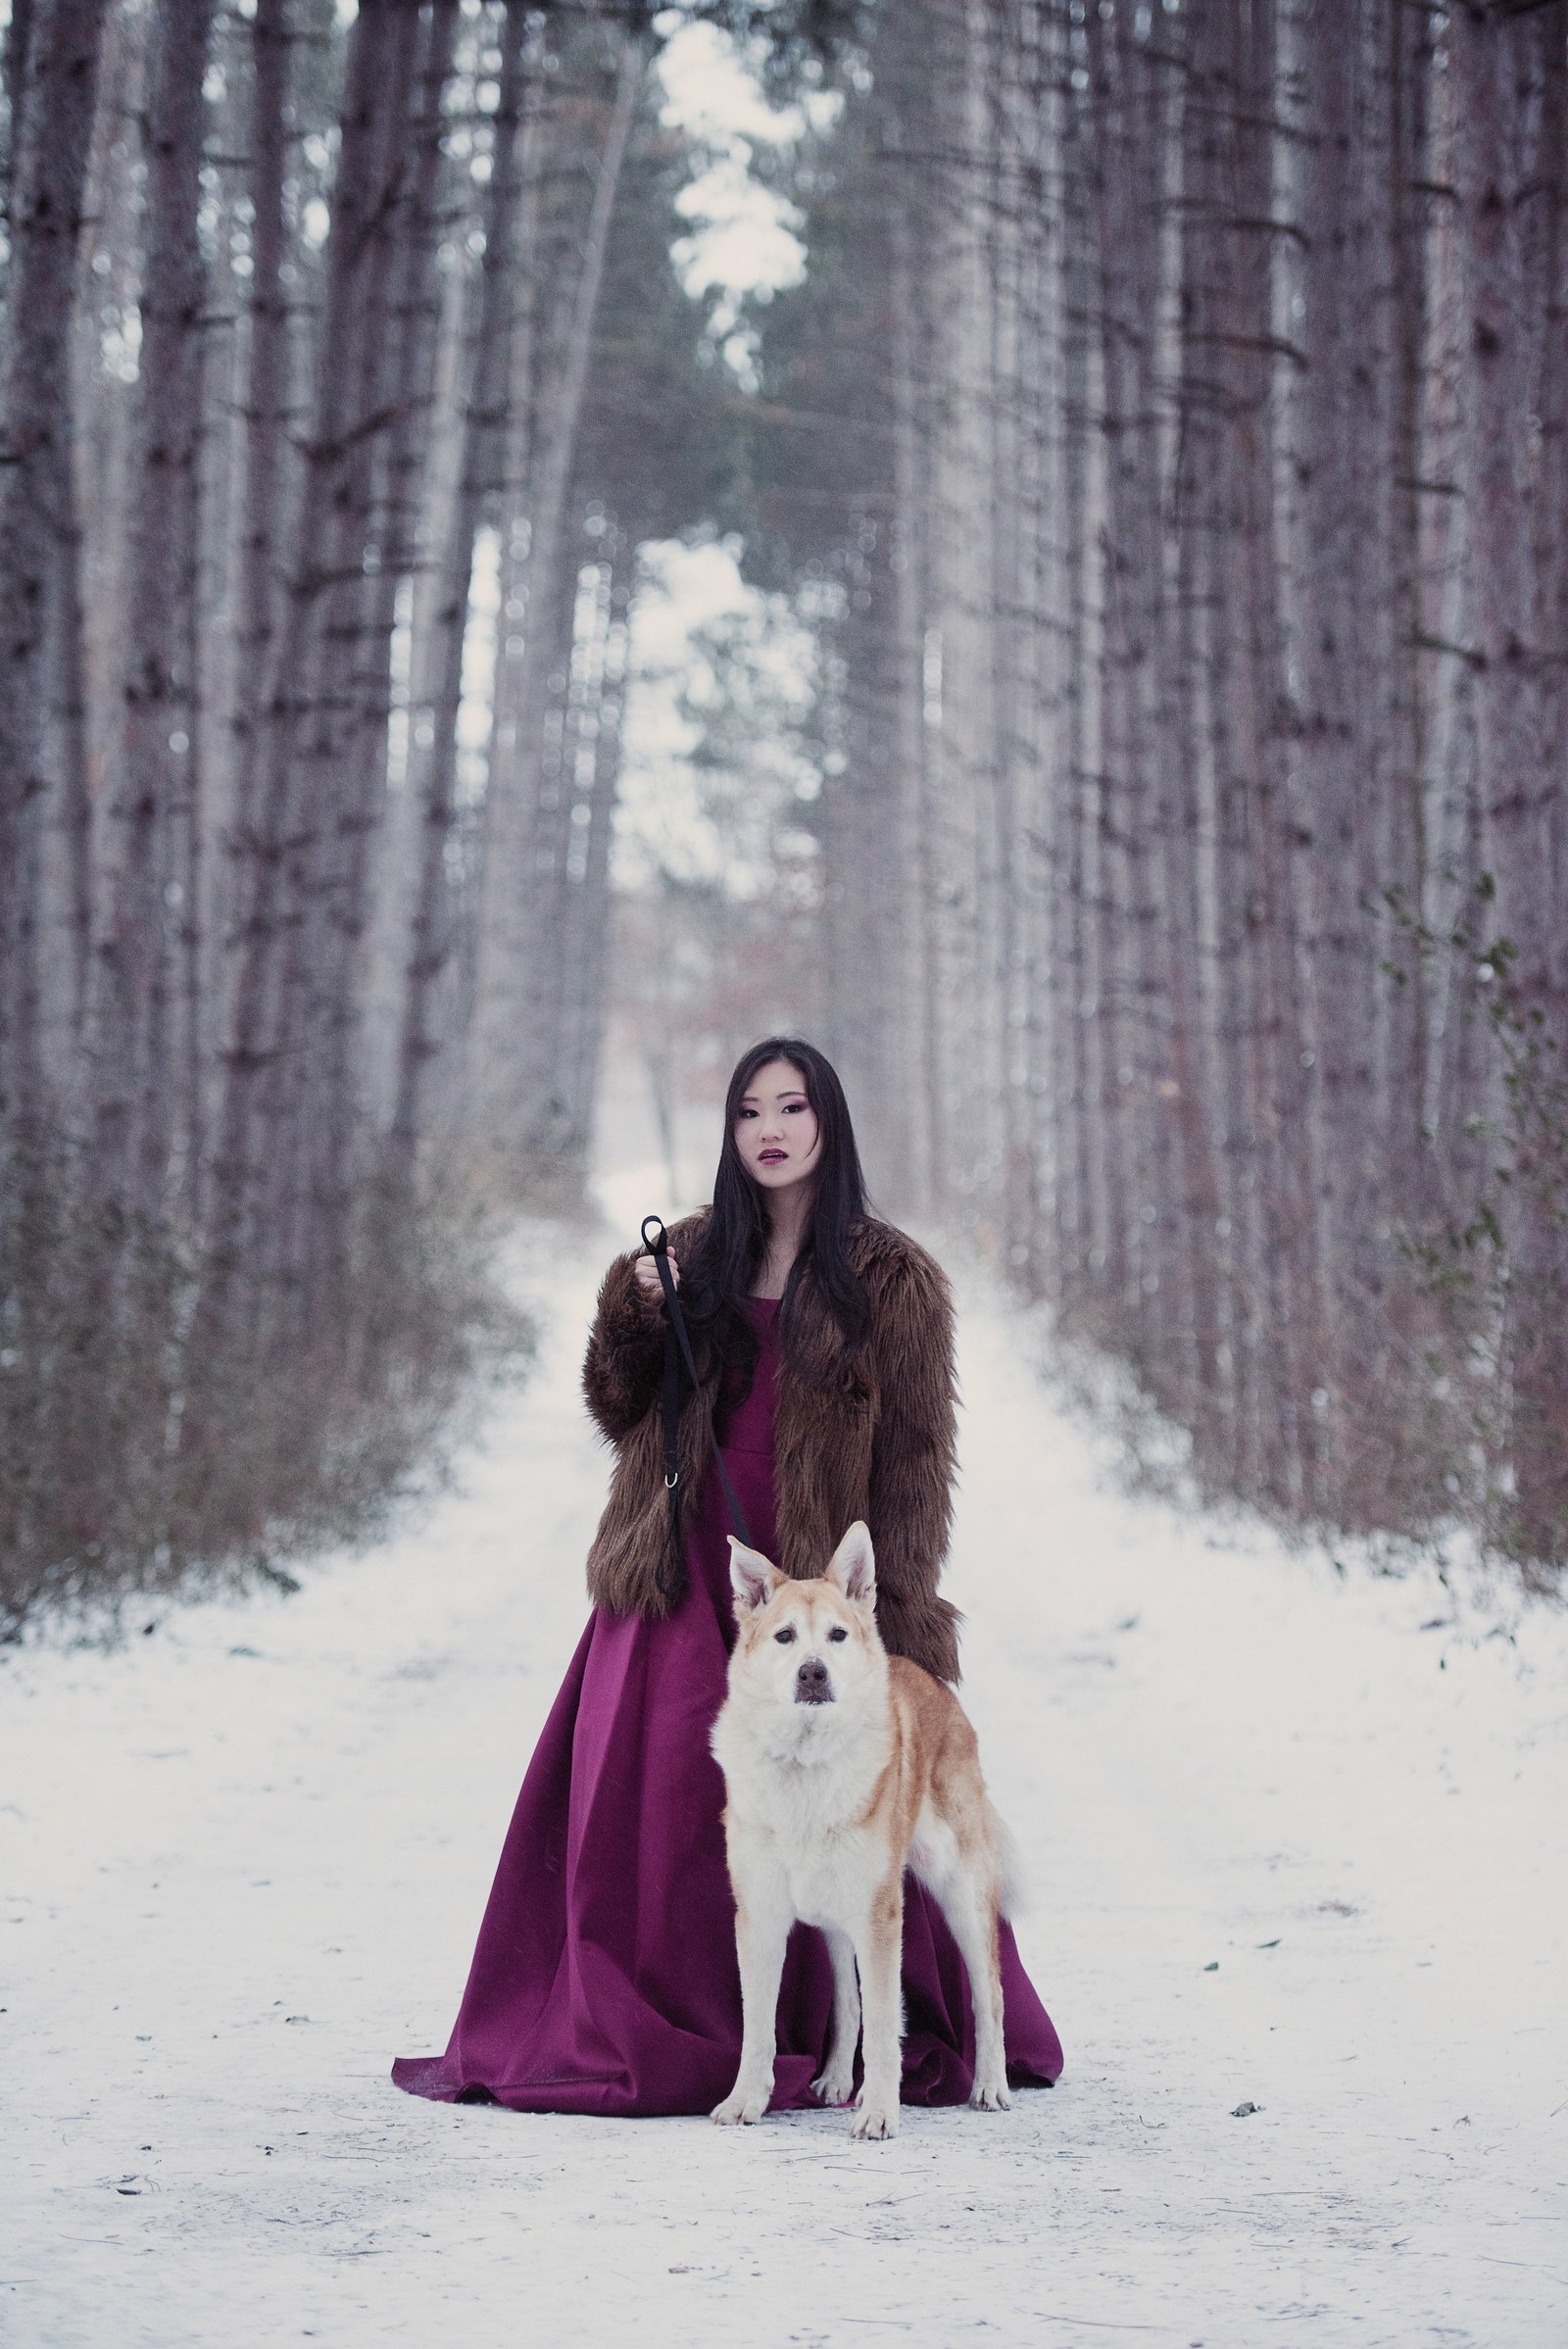 Senior picture of Asian girl with her husky dog in winter scene